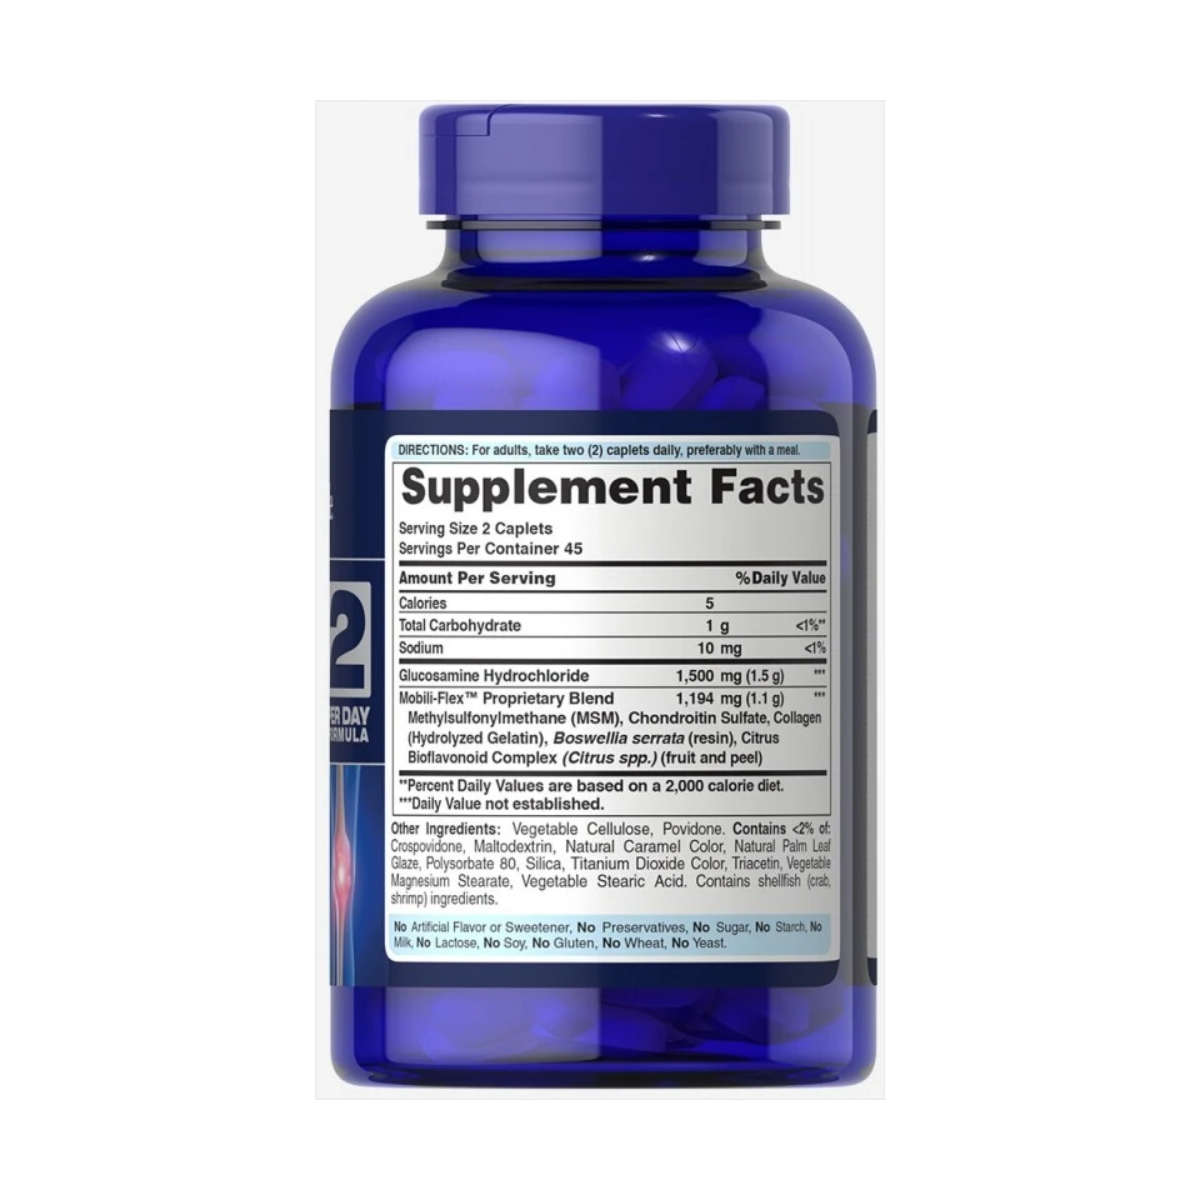 Glucosamina, Condroitina & MSM Joint Soother TRIPLE STRENGTH 90 Caps - Puritan's Pride